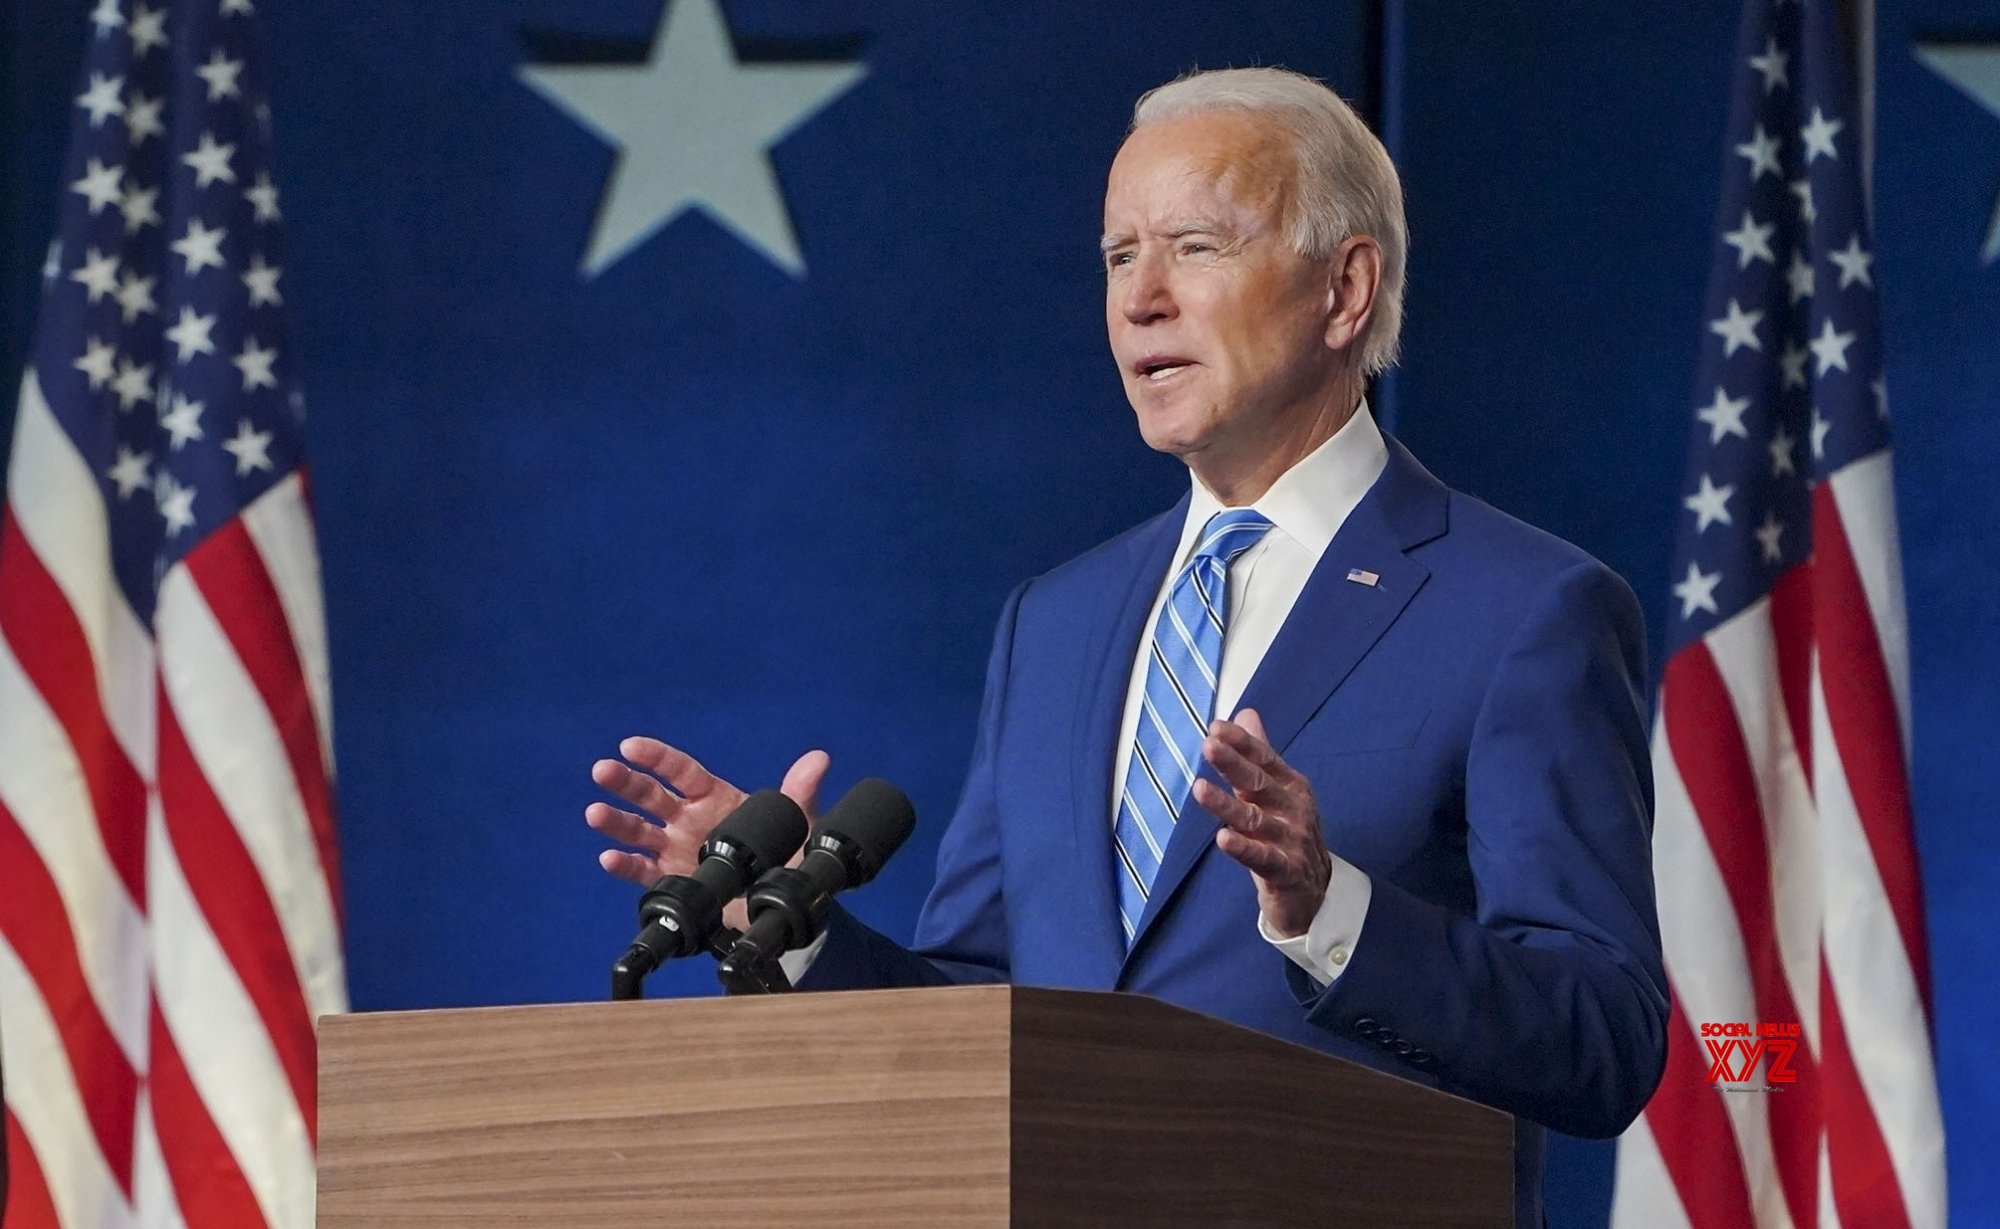 Georgia certifies election results, makes Biden's win official